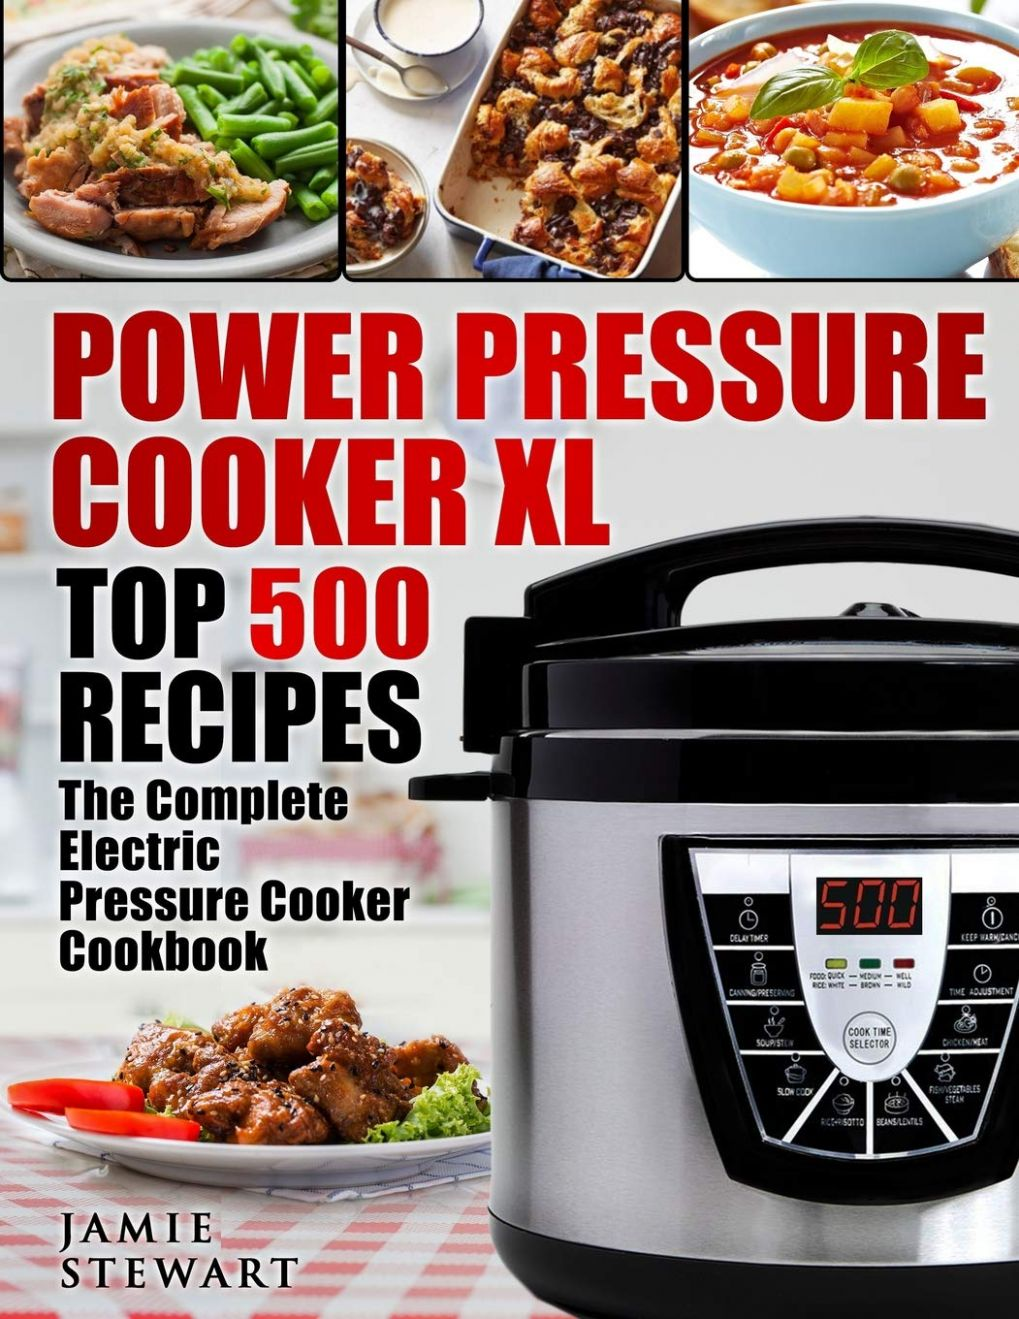 Power Pressure Cooker XL Top 10 Recipes: The Complete Electric ...